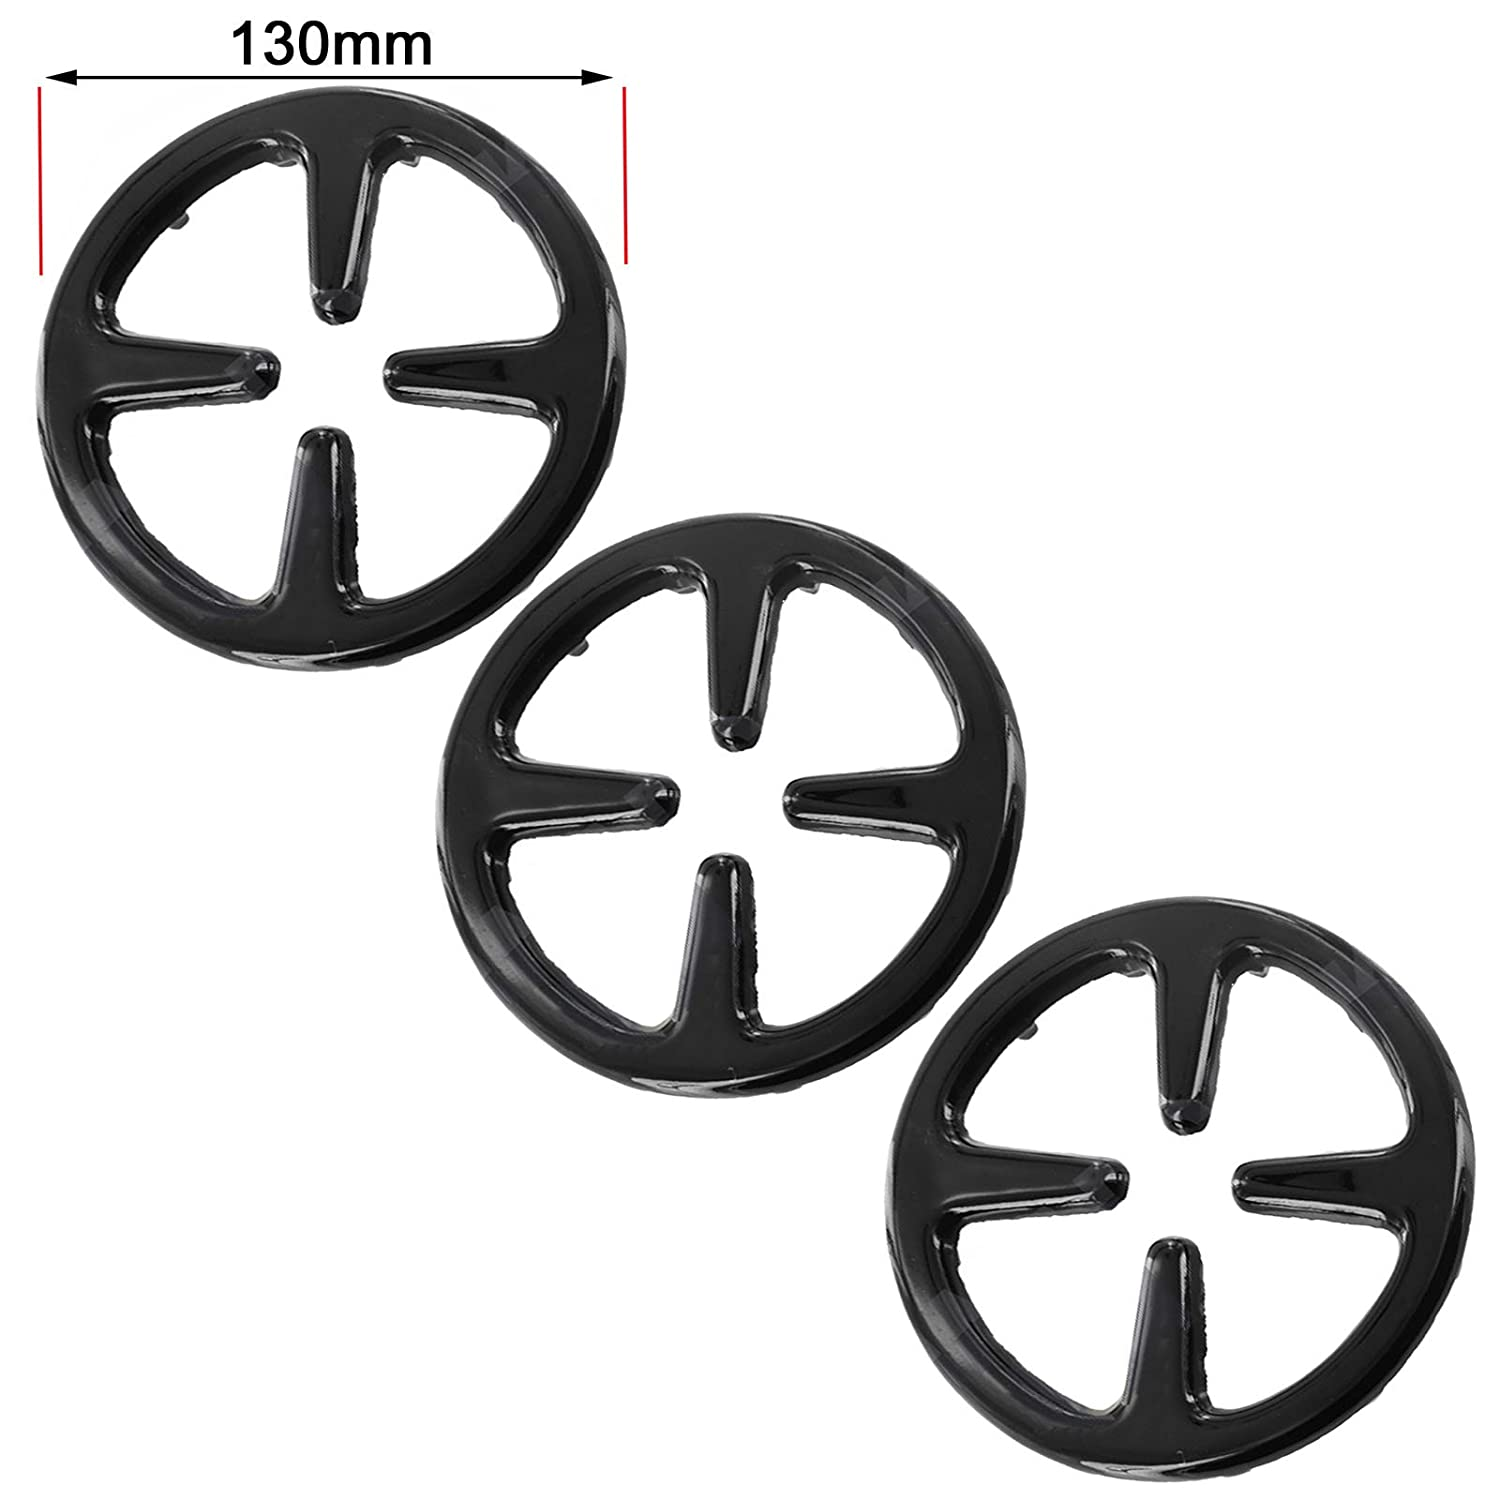 SPARES2GO Gas Cooker Hob Stove Reducer Coffee Moka Trivet Pan Stands (Small - 130mm, Pack of 3)